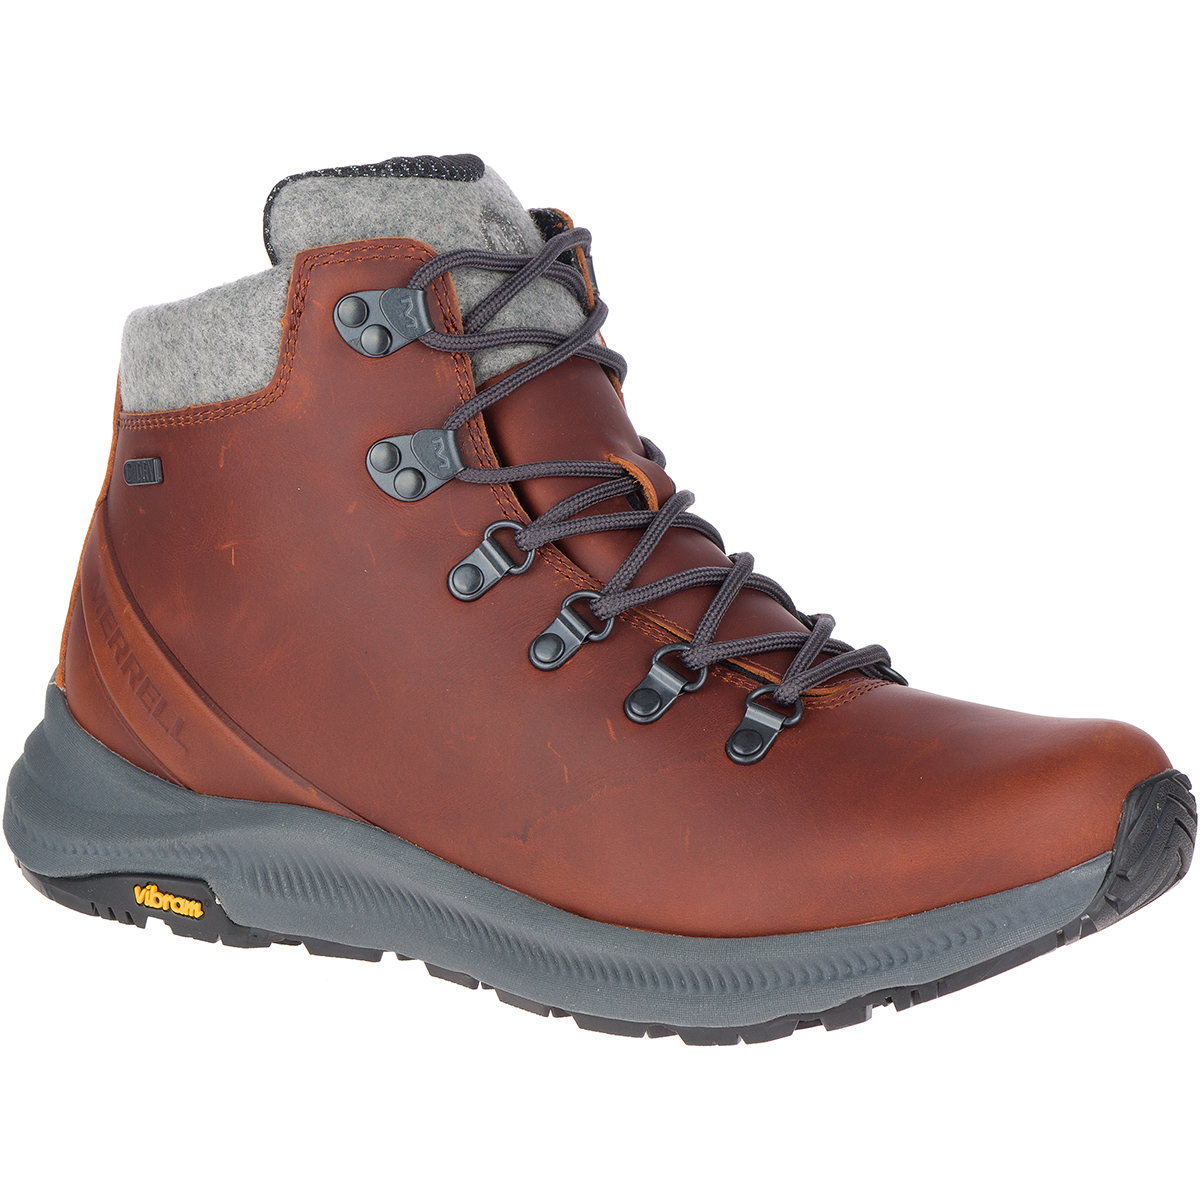 Merrell Men's Ontario Thermo Waterproof Hiking Boot - Brown, 9